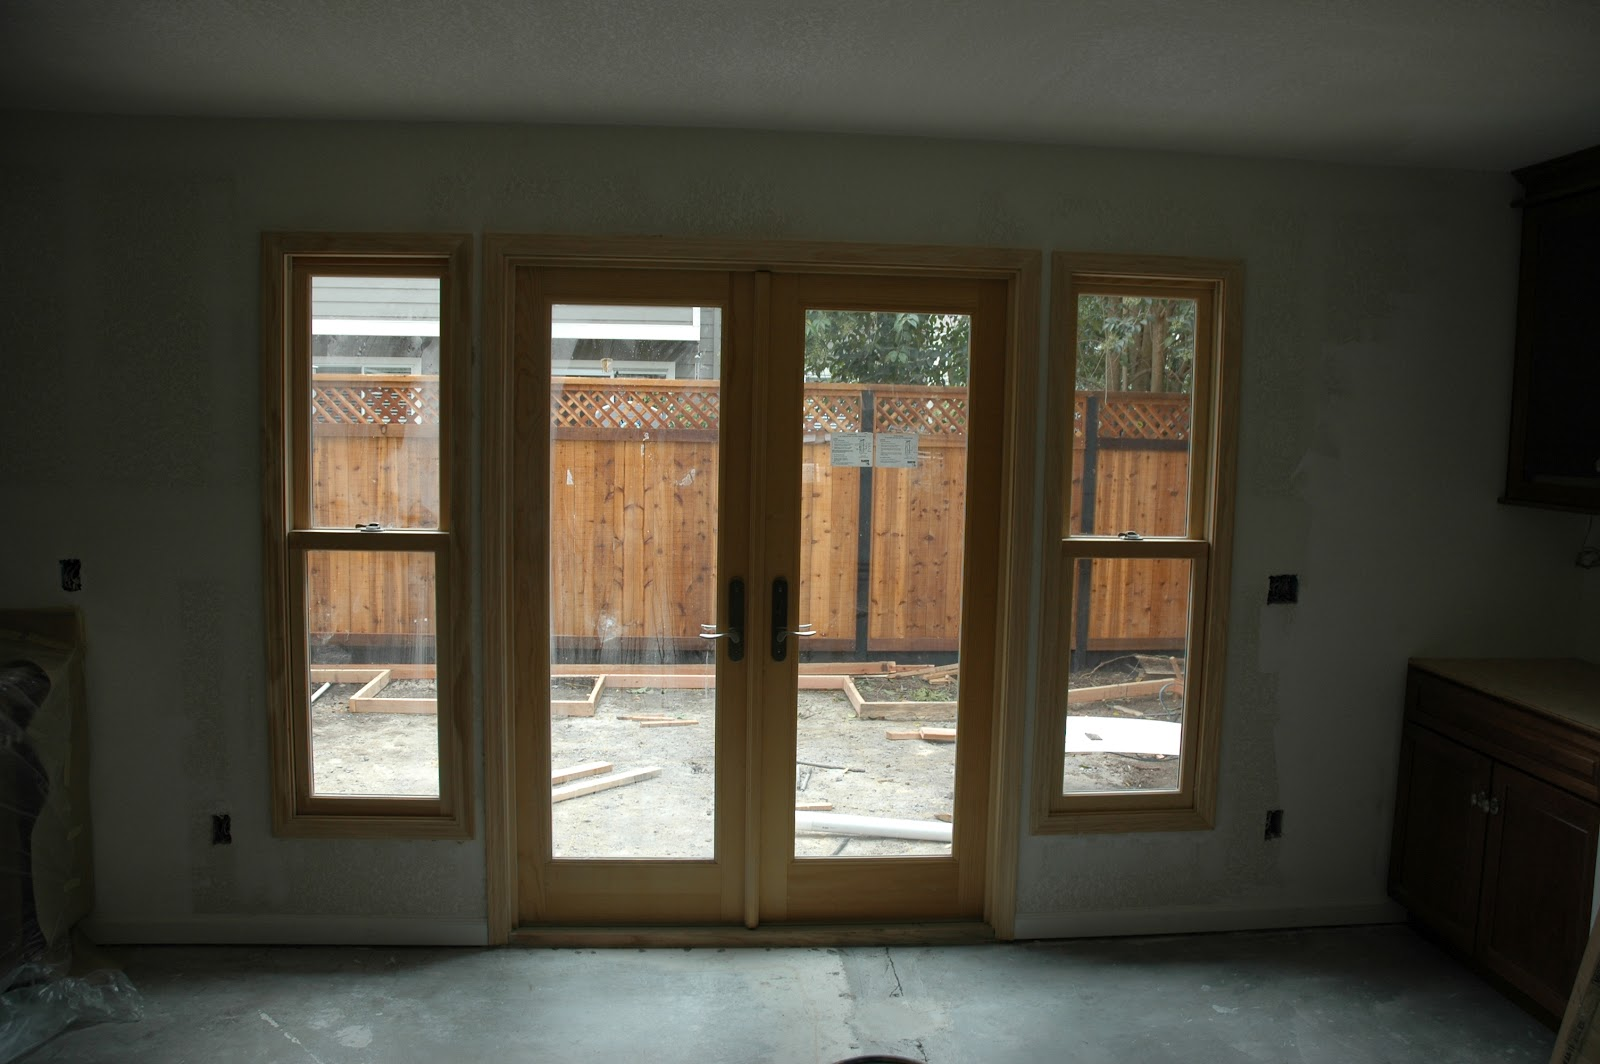 French door marin glass and windows blog for Double hung french patio doors